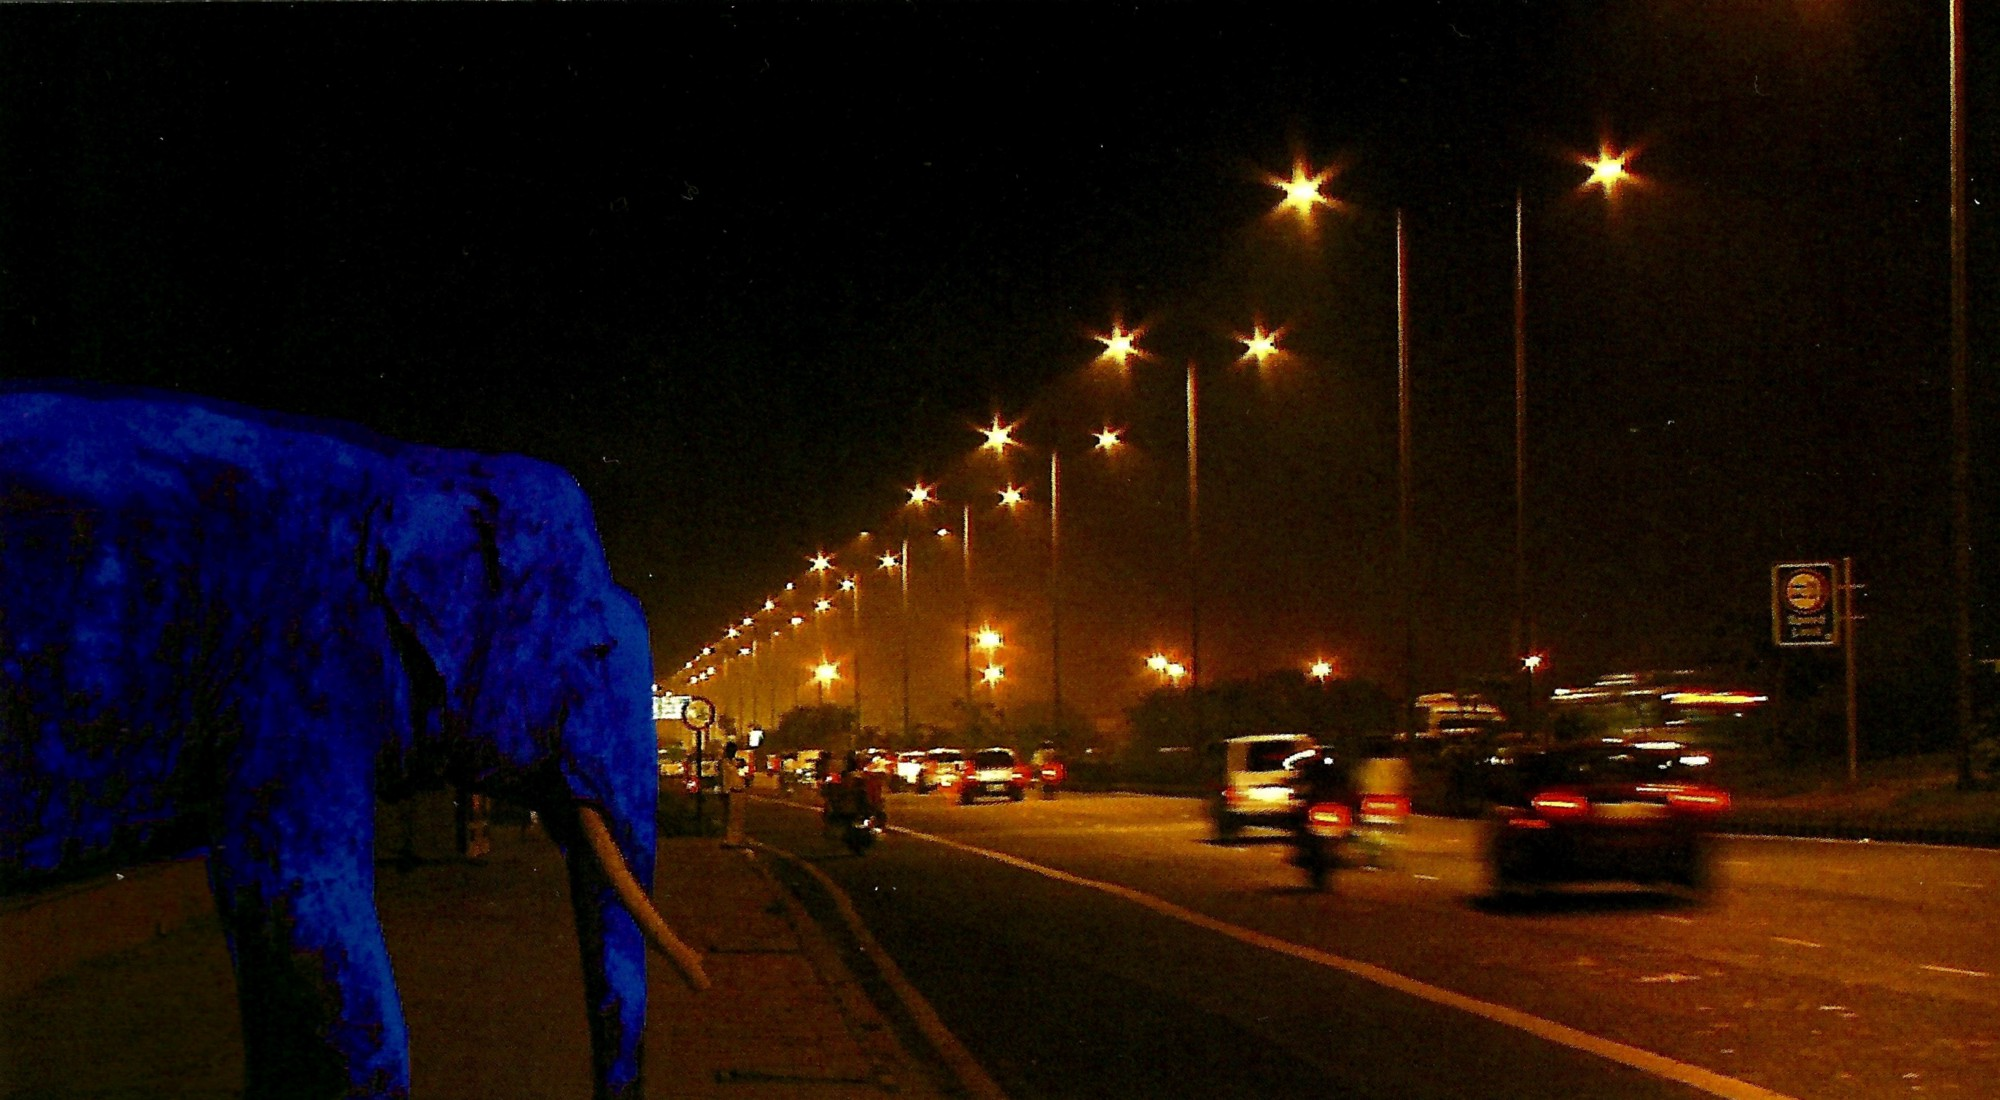 An ultramarine elephant watches cars go by on a busy highway at night, bathed in orange light